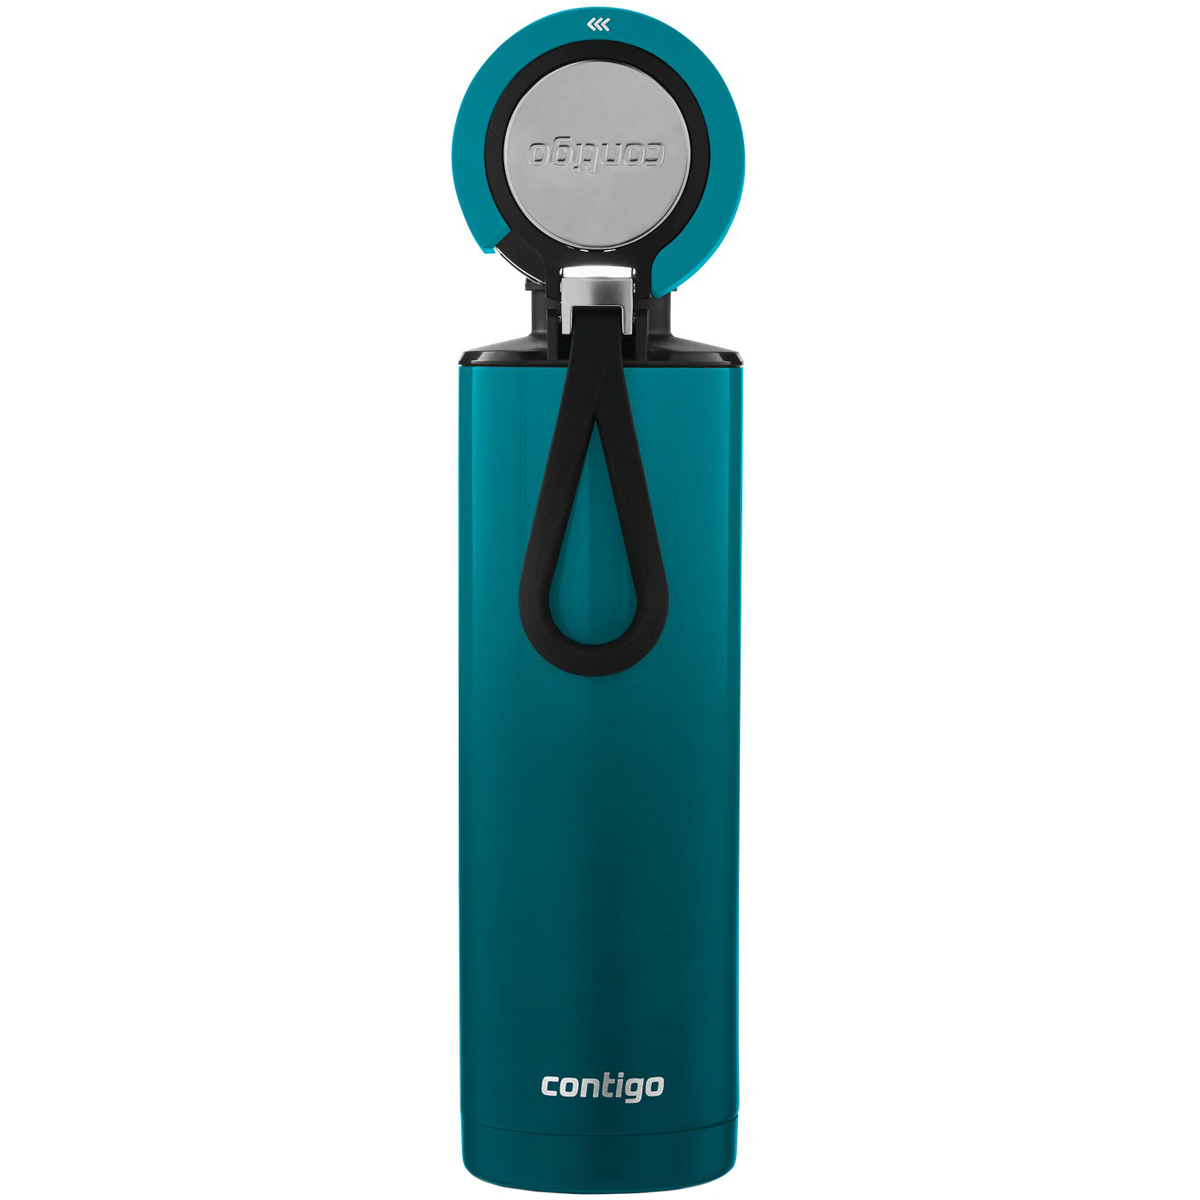 Contigo-24-oz-Evoke-Quick-Twist-Lid-Insulated-Stainless-Steel-Water-Bottle thumbnail 15